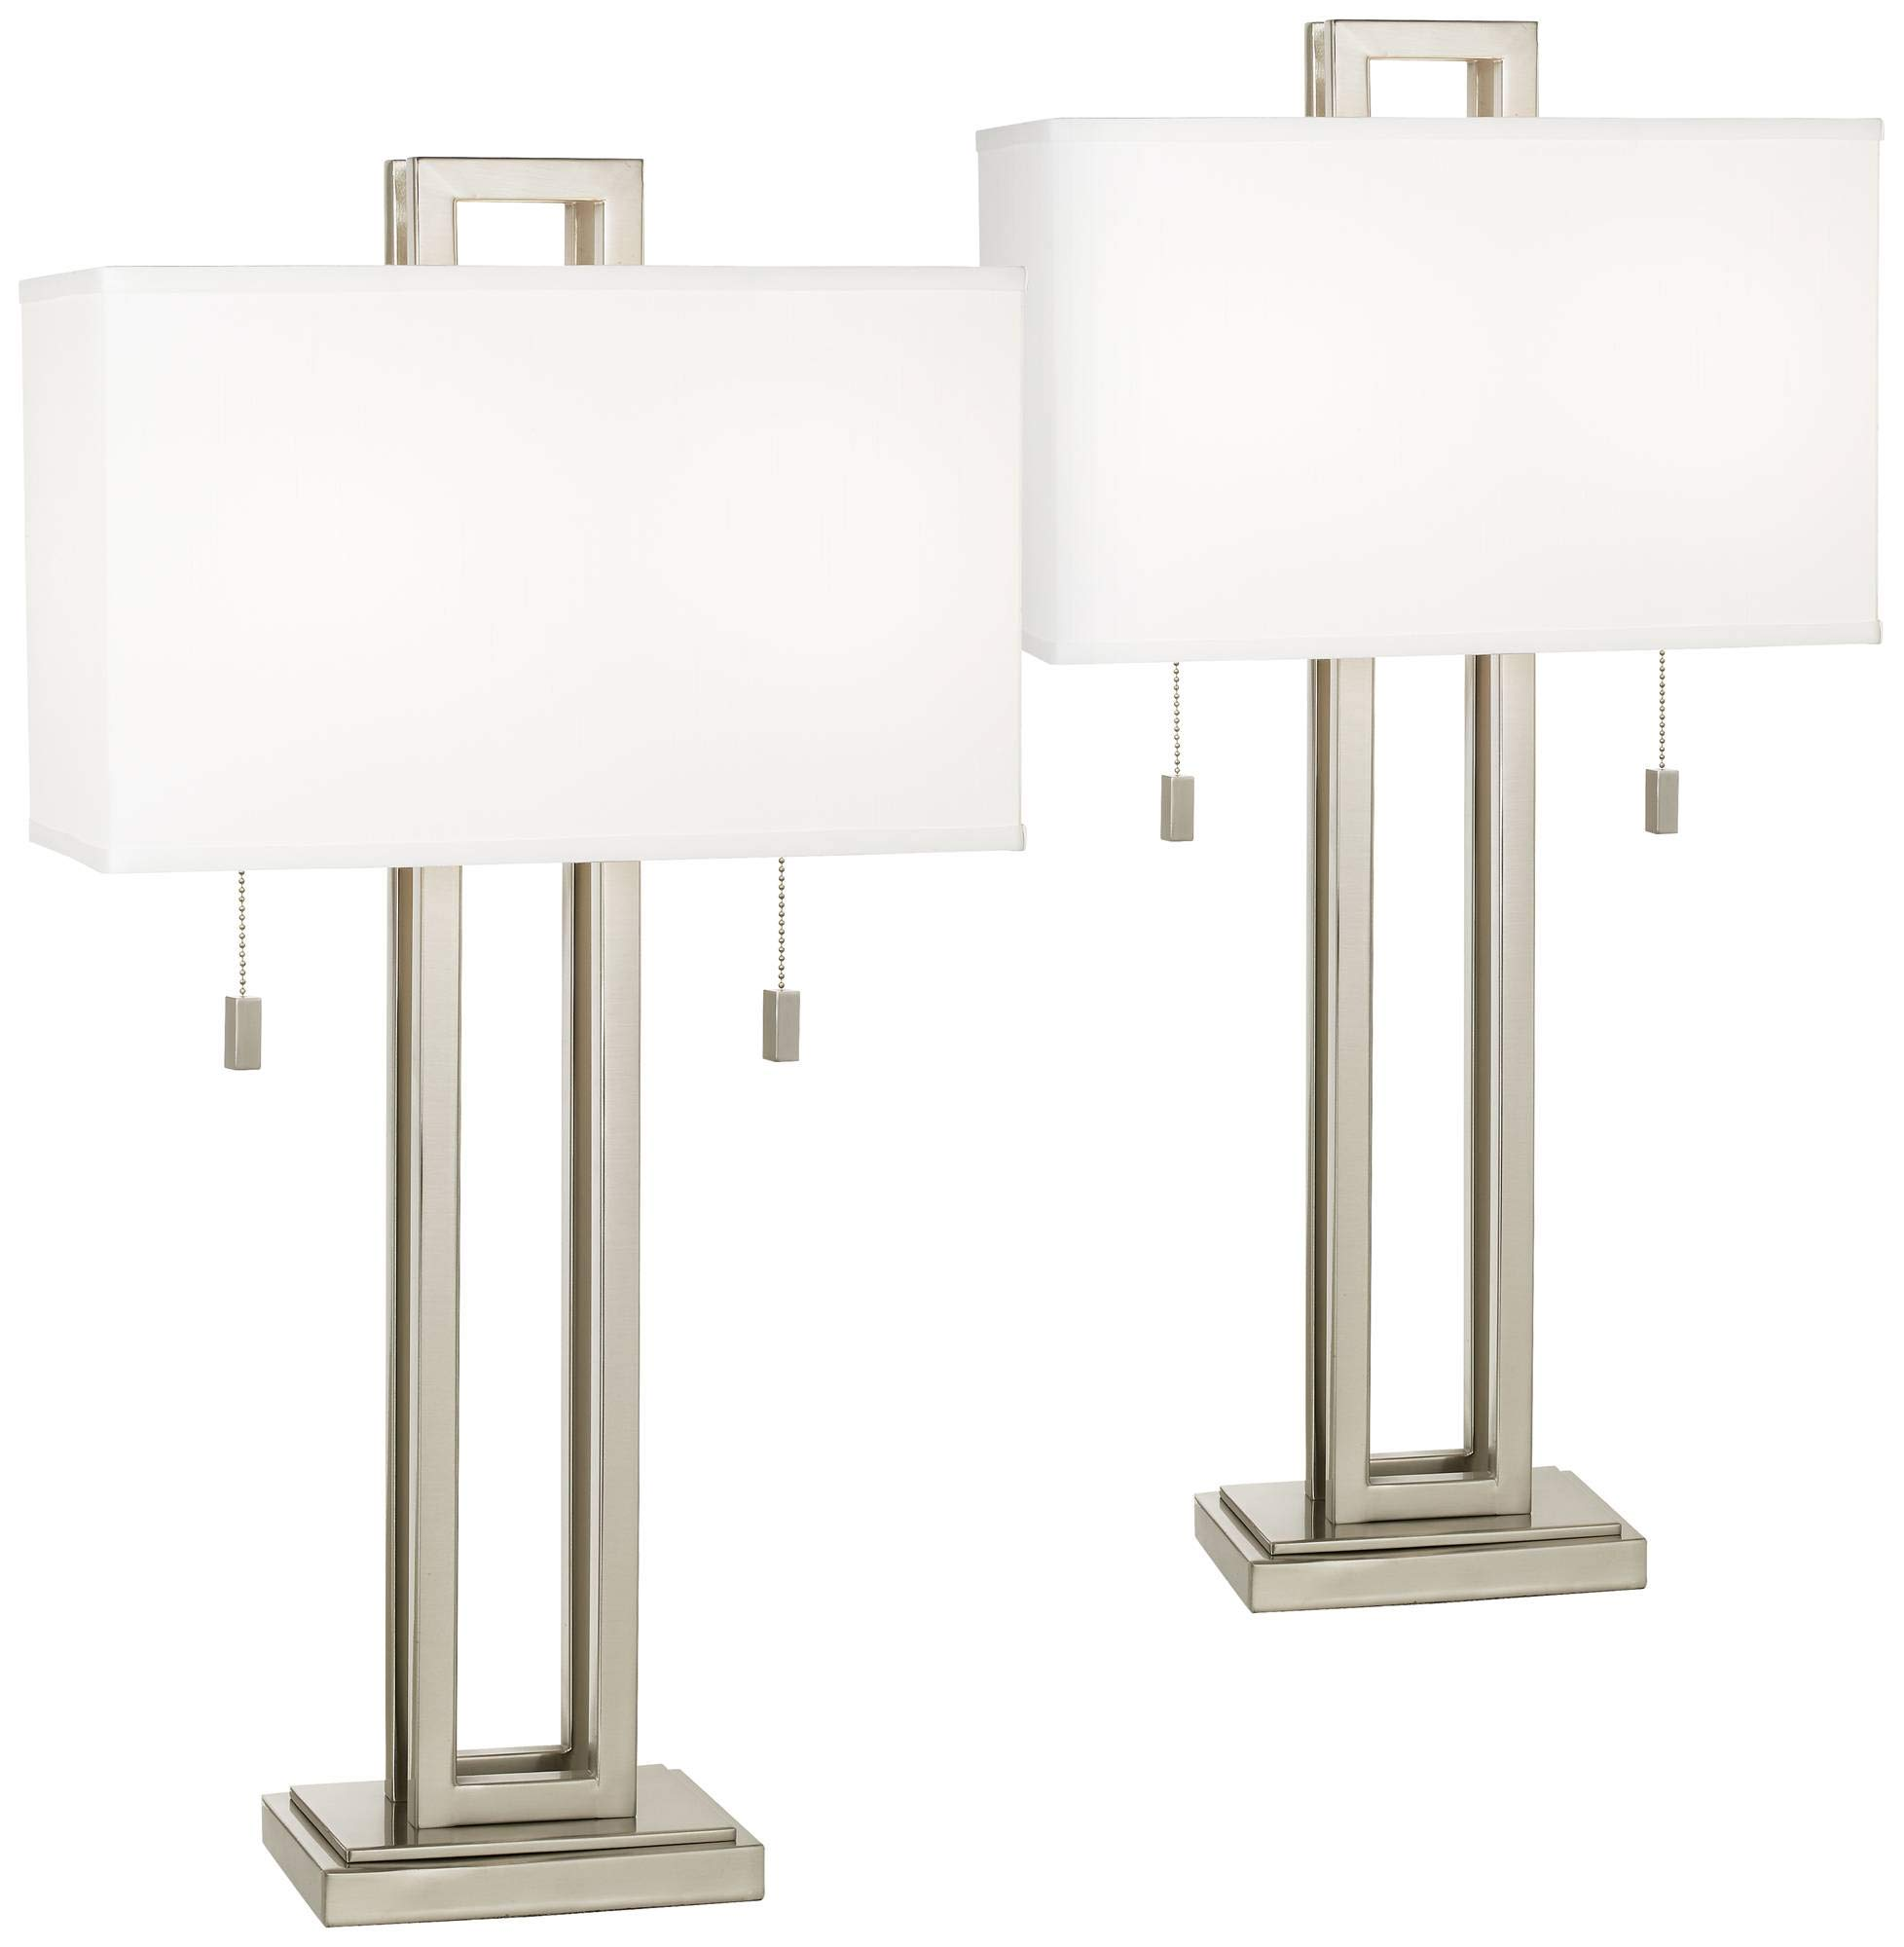 Gossard Modern Table Lamps Set of 2 Brushed Nickel Open Rectangular White Box Shade for Living Room Family Bedroom - Possini Euro Design